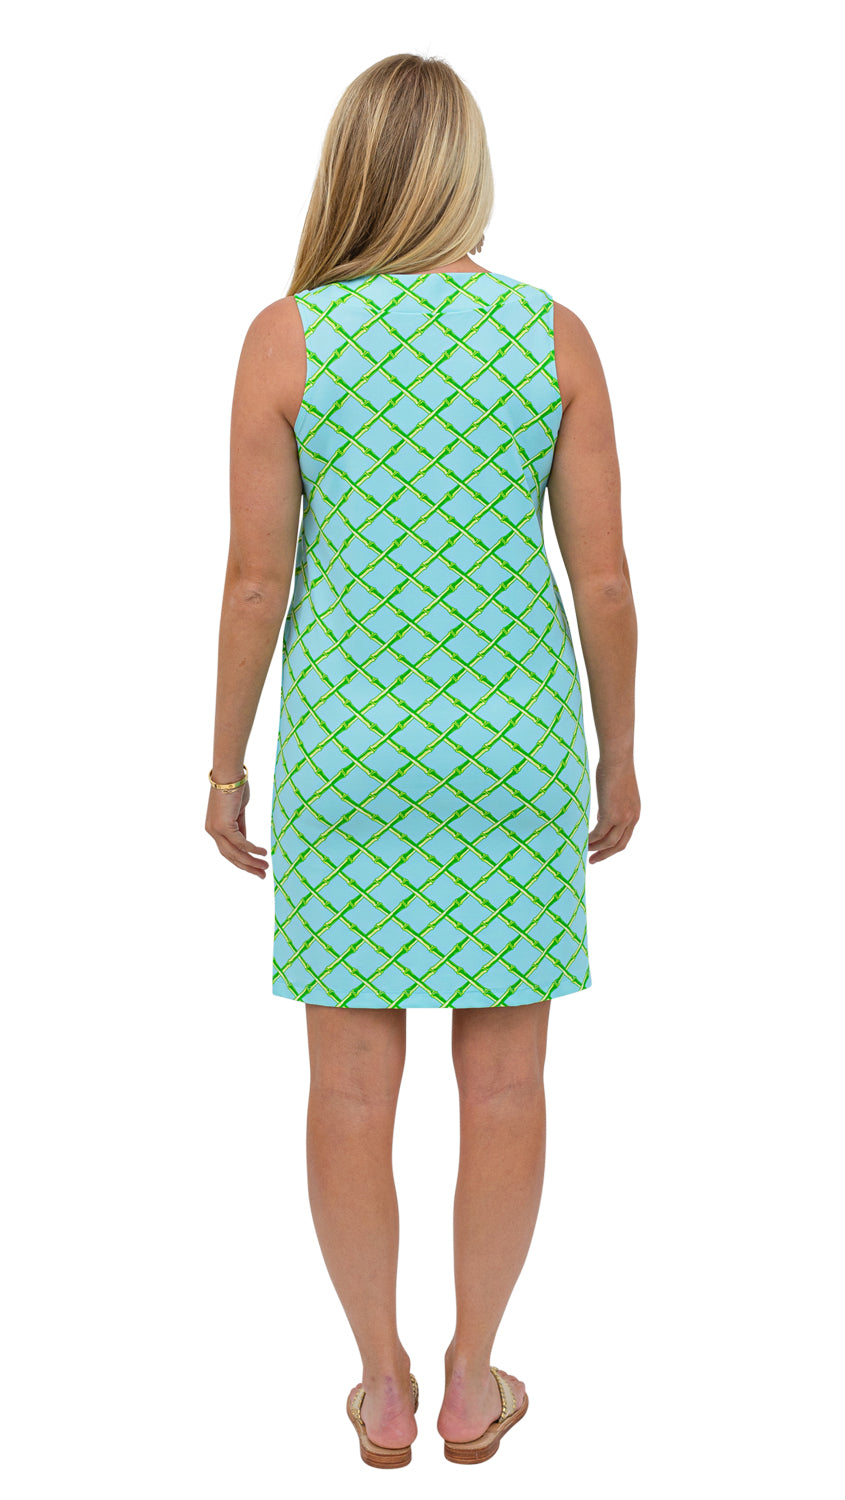 Yacht Club Shift - Turq/Green Bamboo Lattice